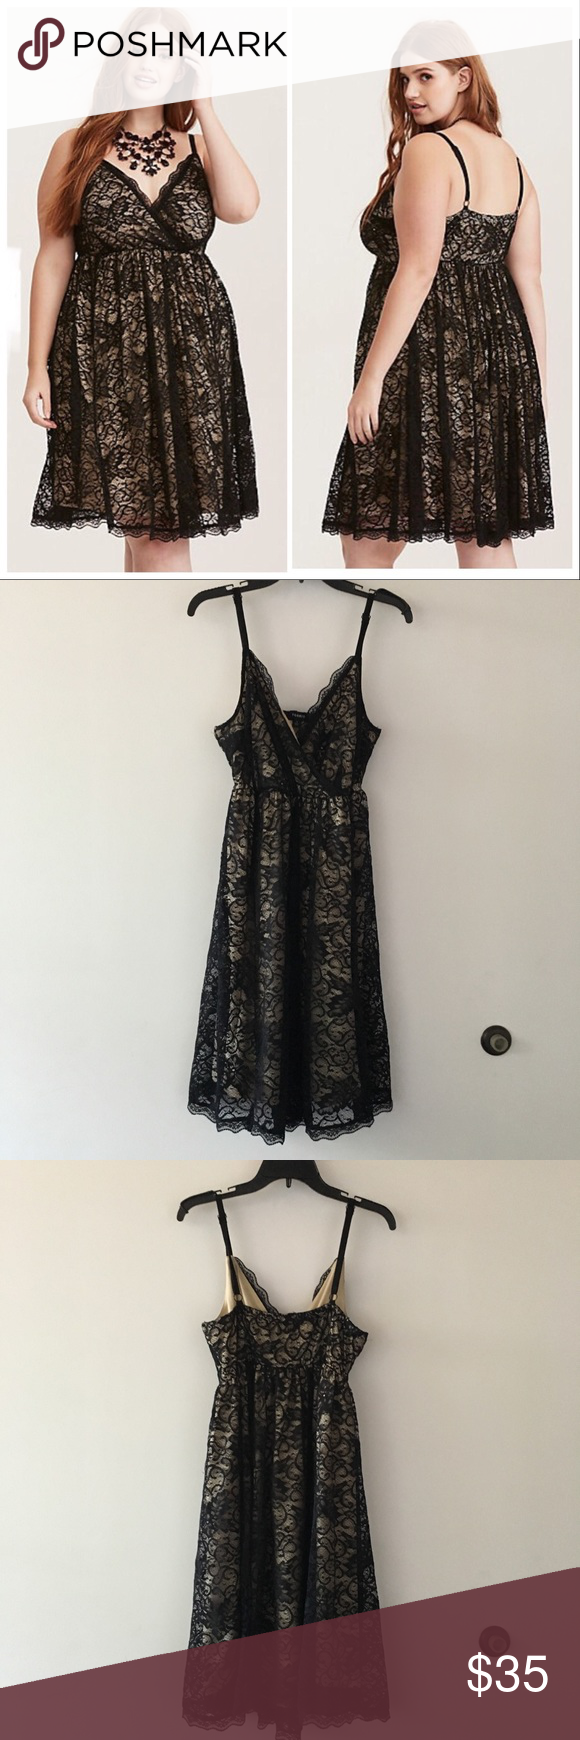 Lace dress torrid  Torrid Black u Nude Lace Surplice Skater Dress  My Posh Closet